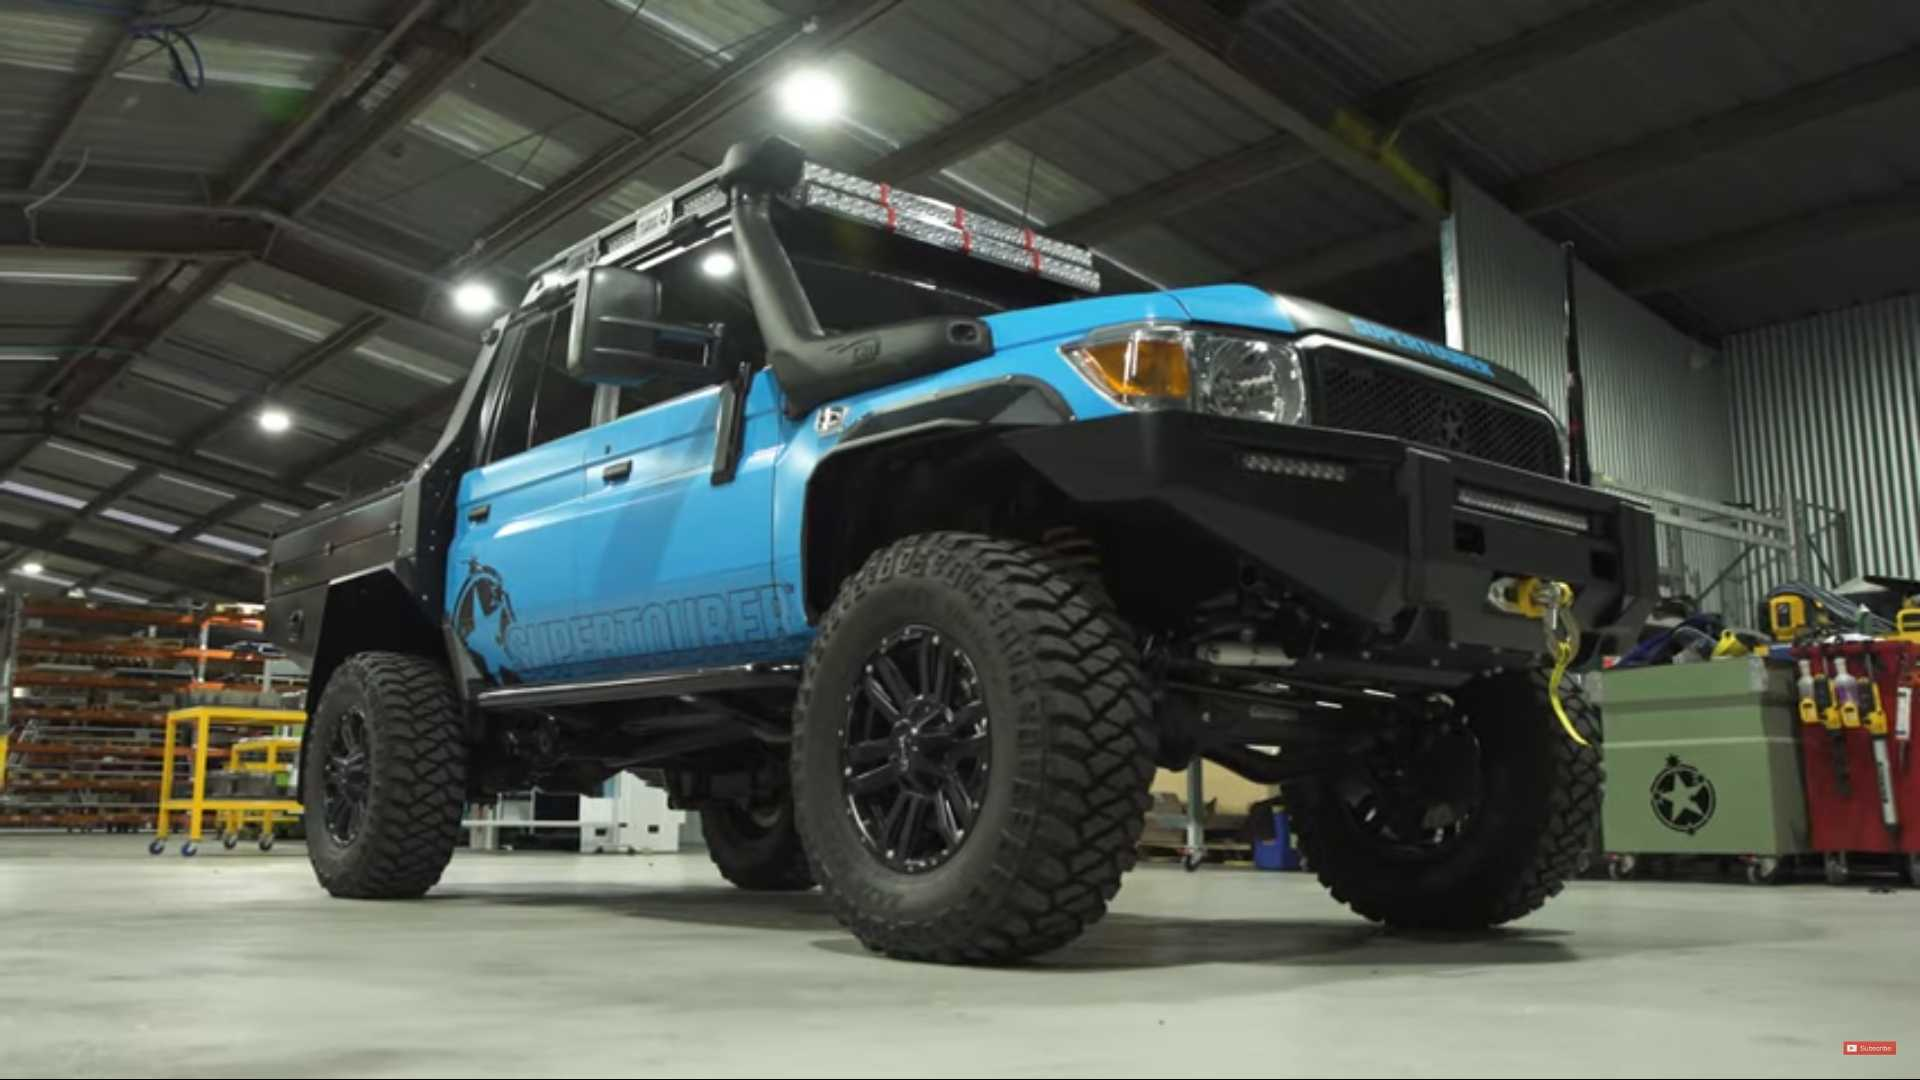 Epic Toyota Land Cruiser With Portal Axles Is Ready To Go Anywhere